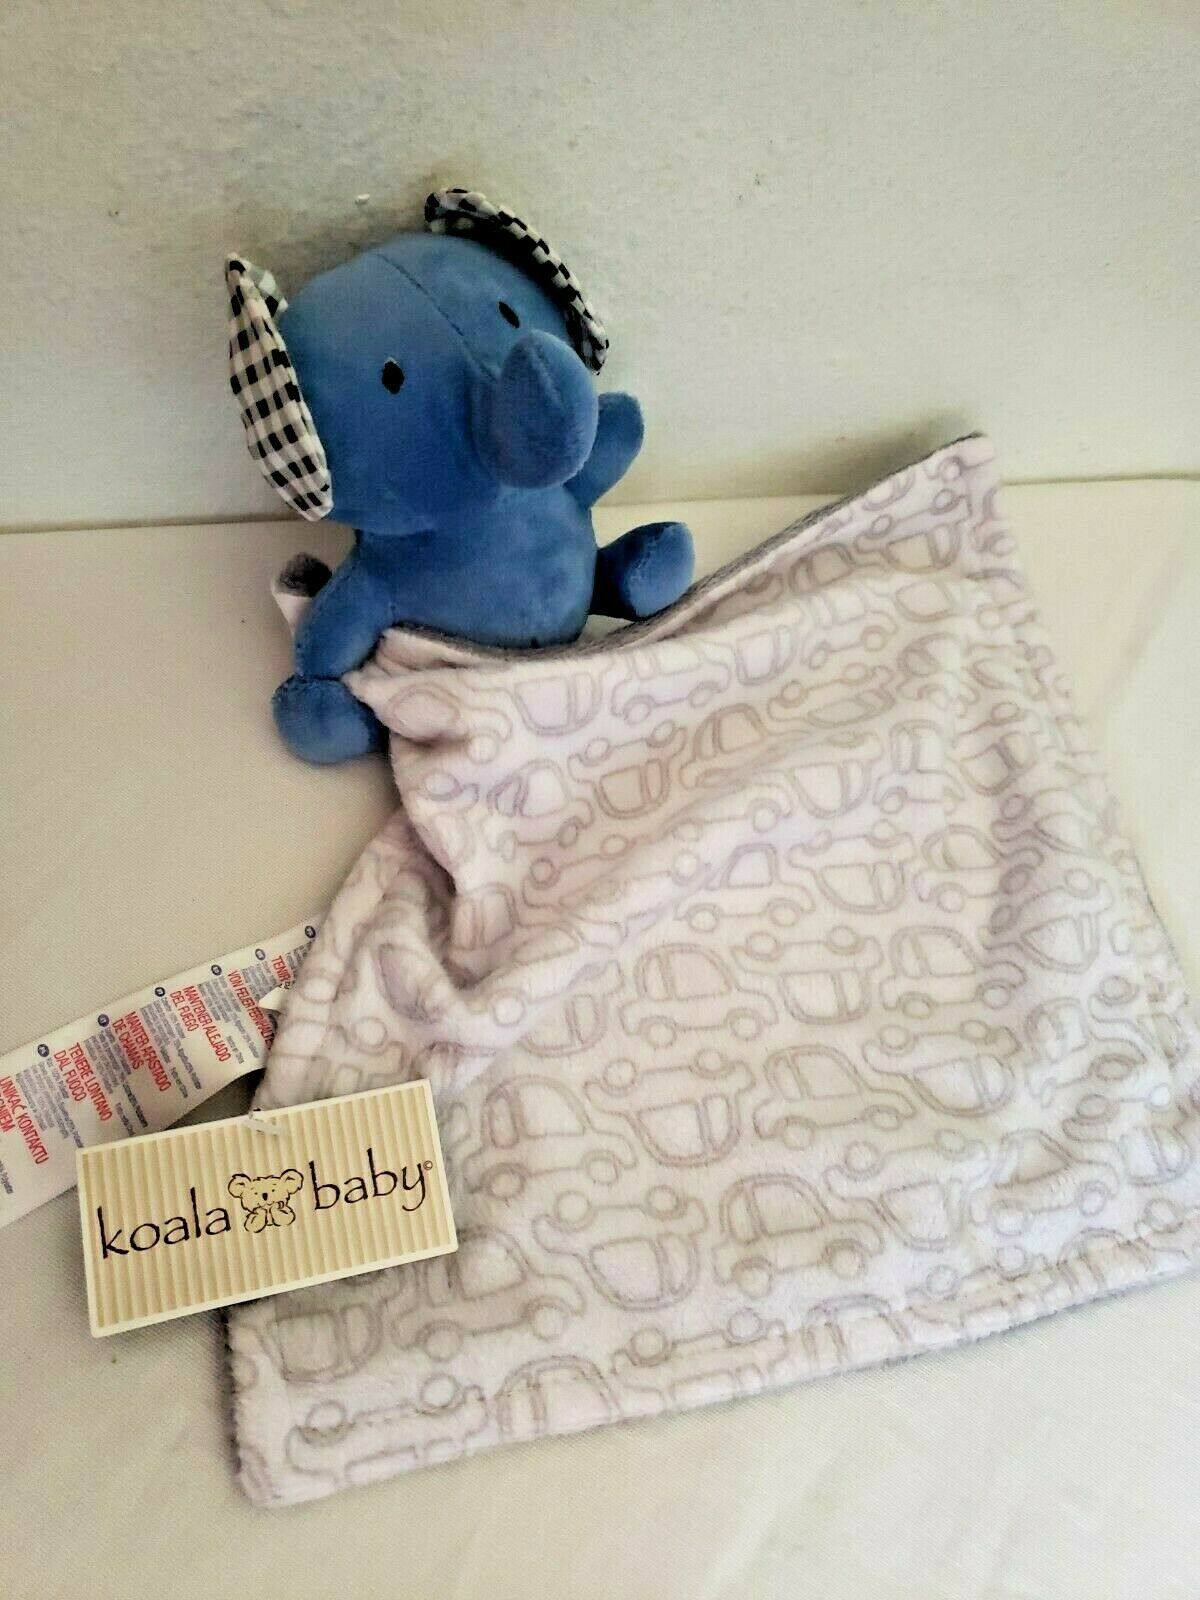 Primary image for Koala Baby Babies R Us Security Blanket Blue Elephant Grey White Cars Gingham